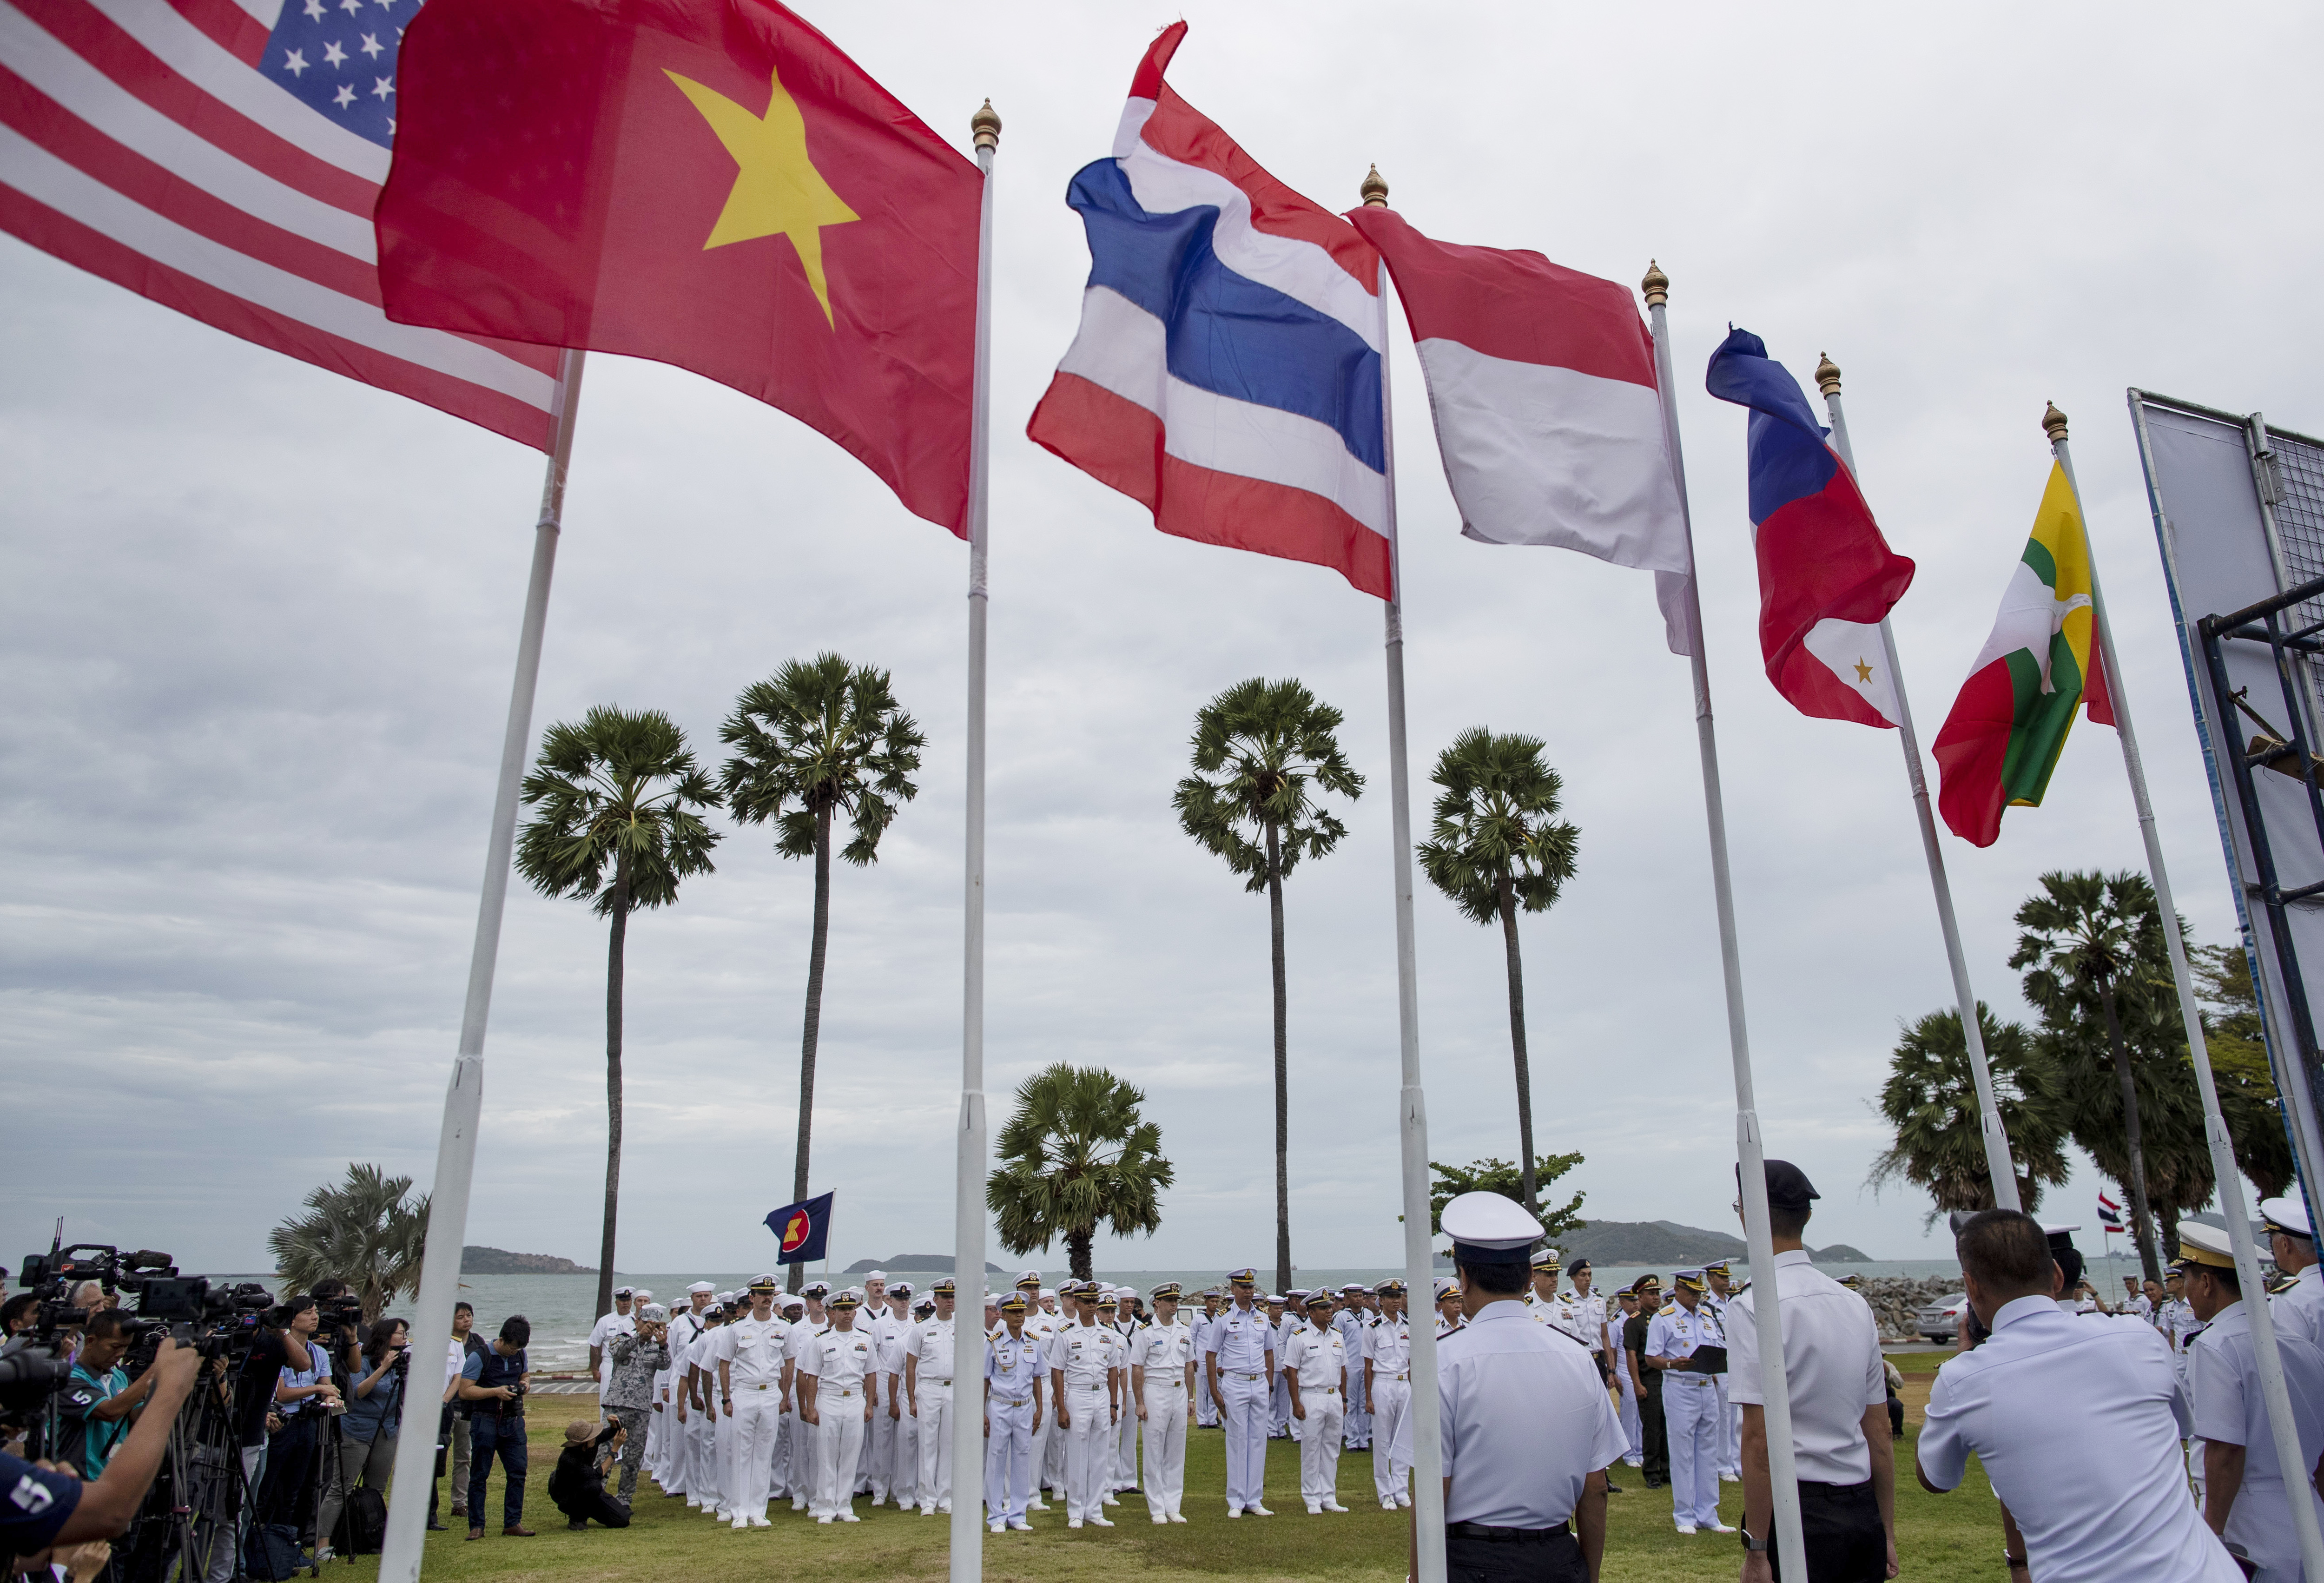 US promotes free and open Indo-Pacific at naval exercise